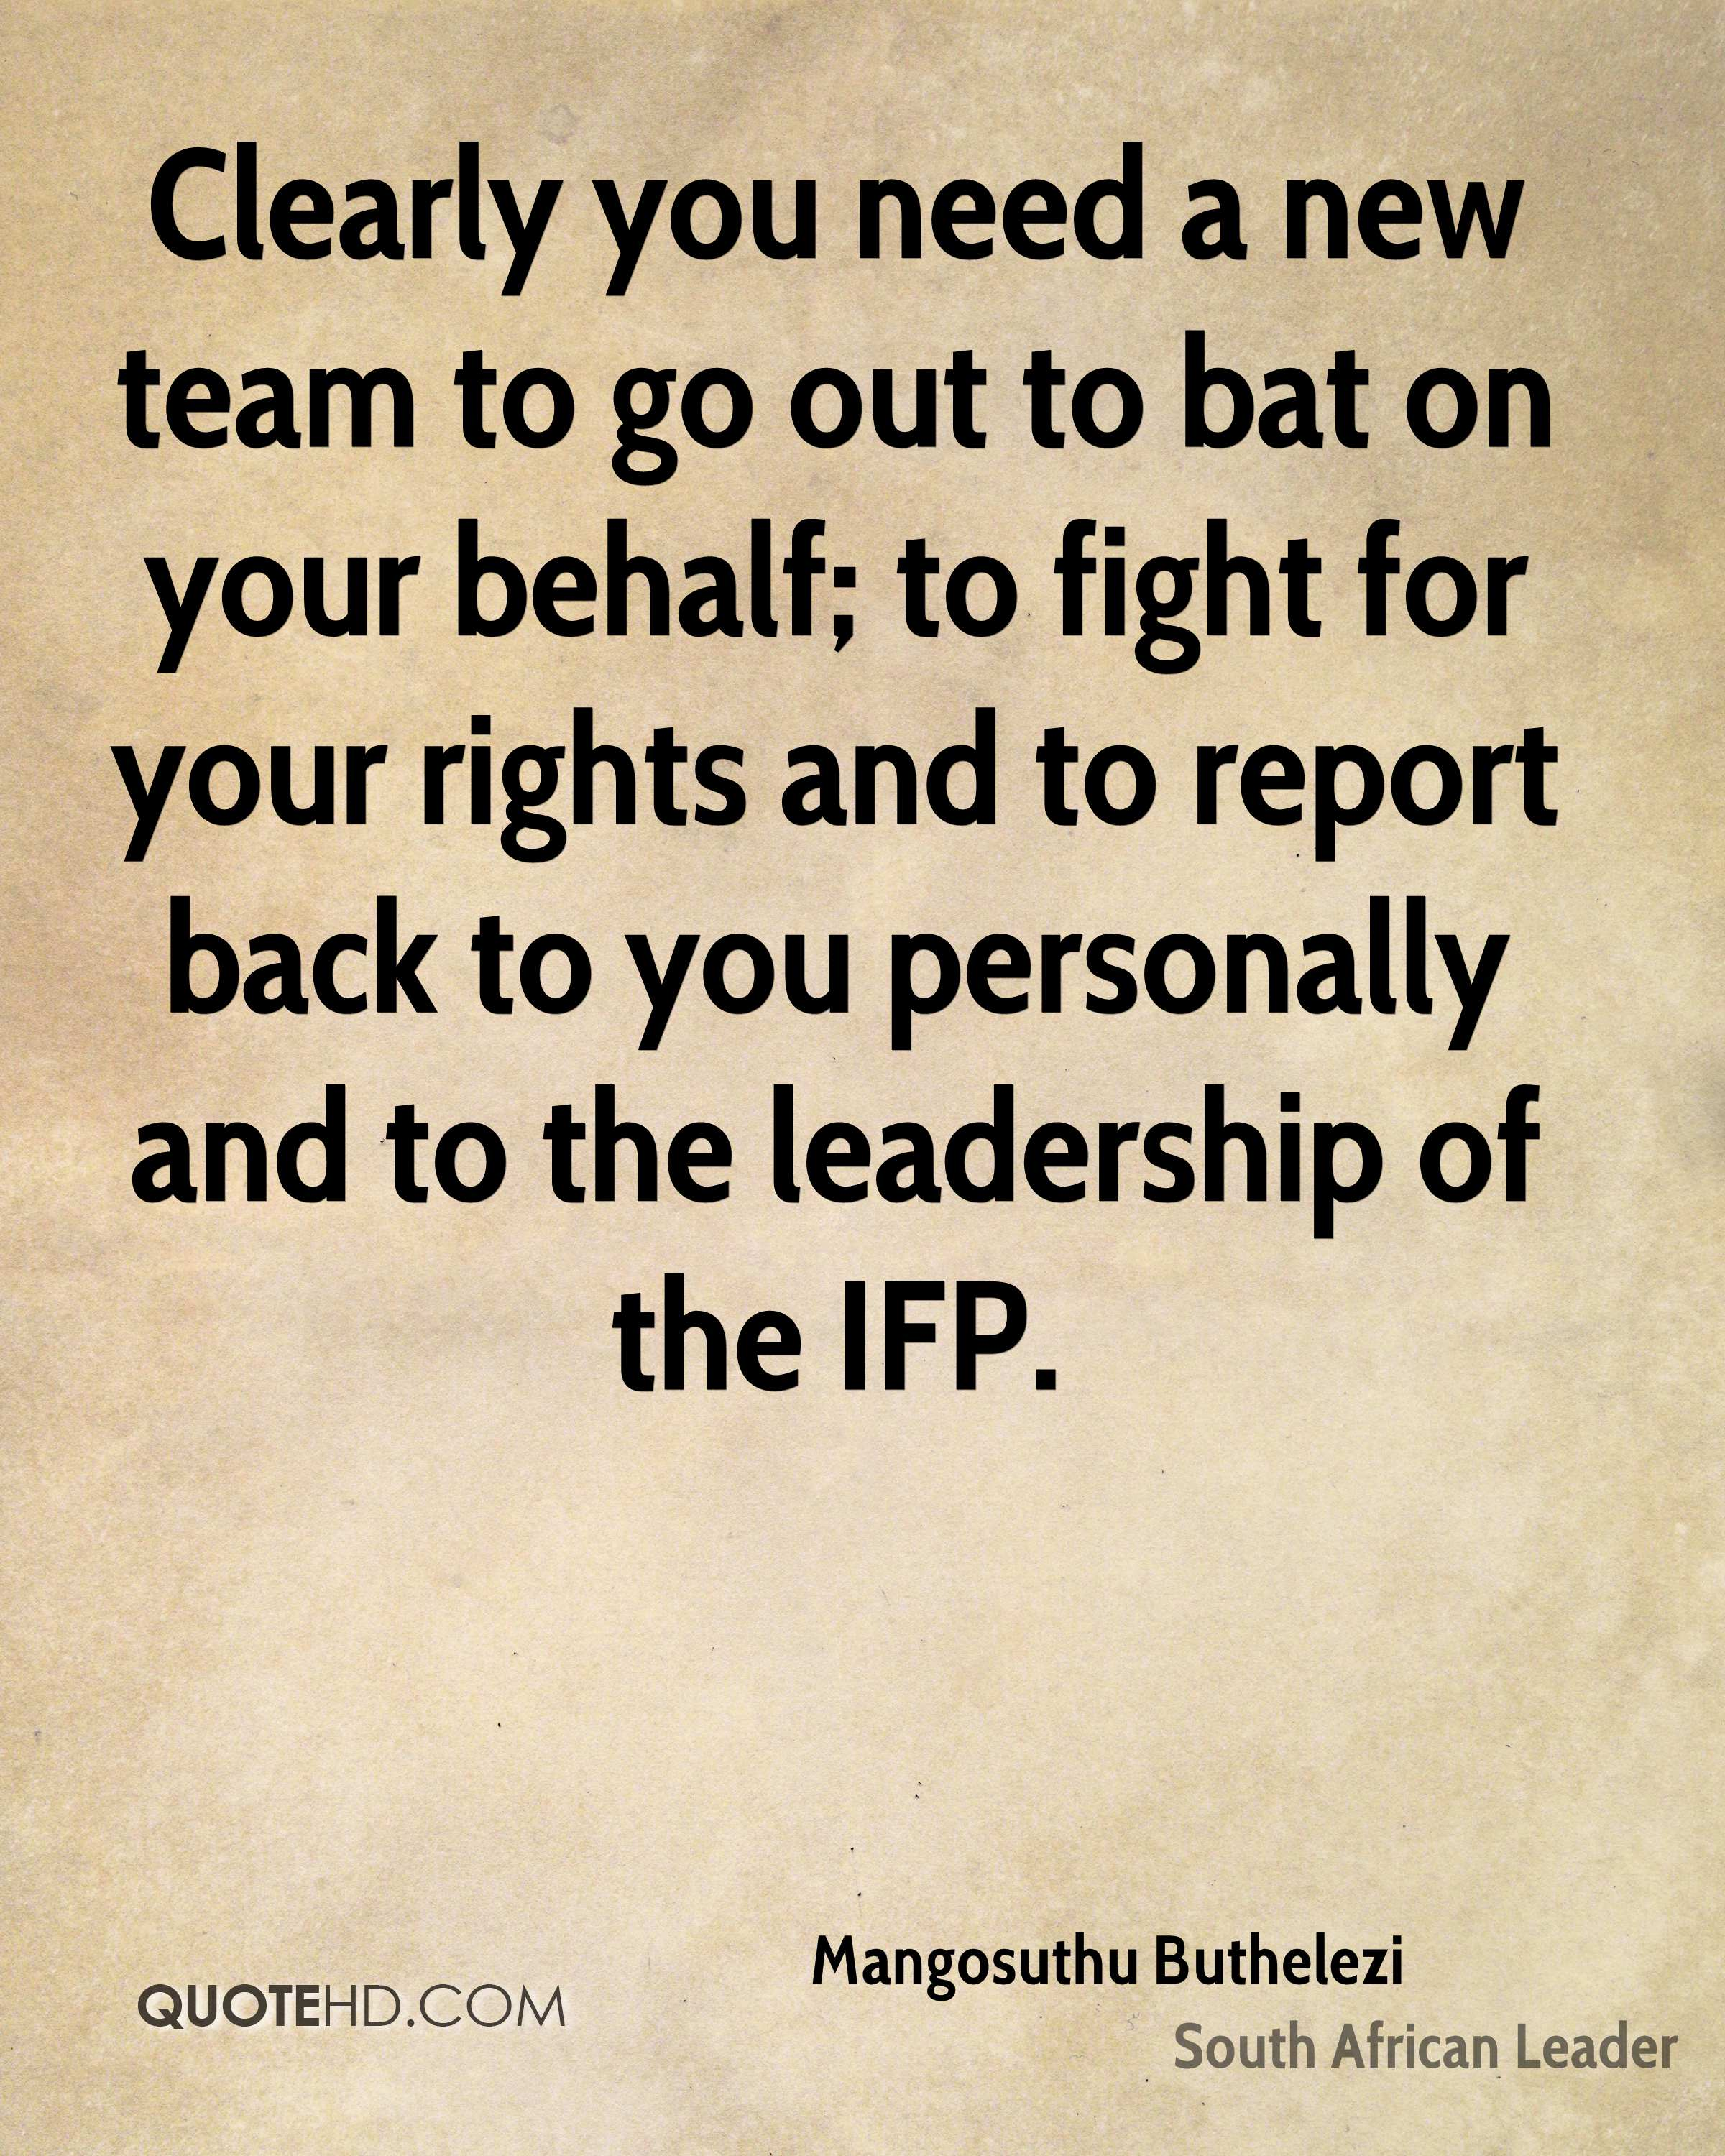 Clearly you need a new team to go out to bat on your behalf; to fight for your rights and to report back to you personally and to the leadership of the IFP.